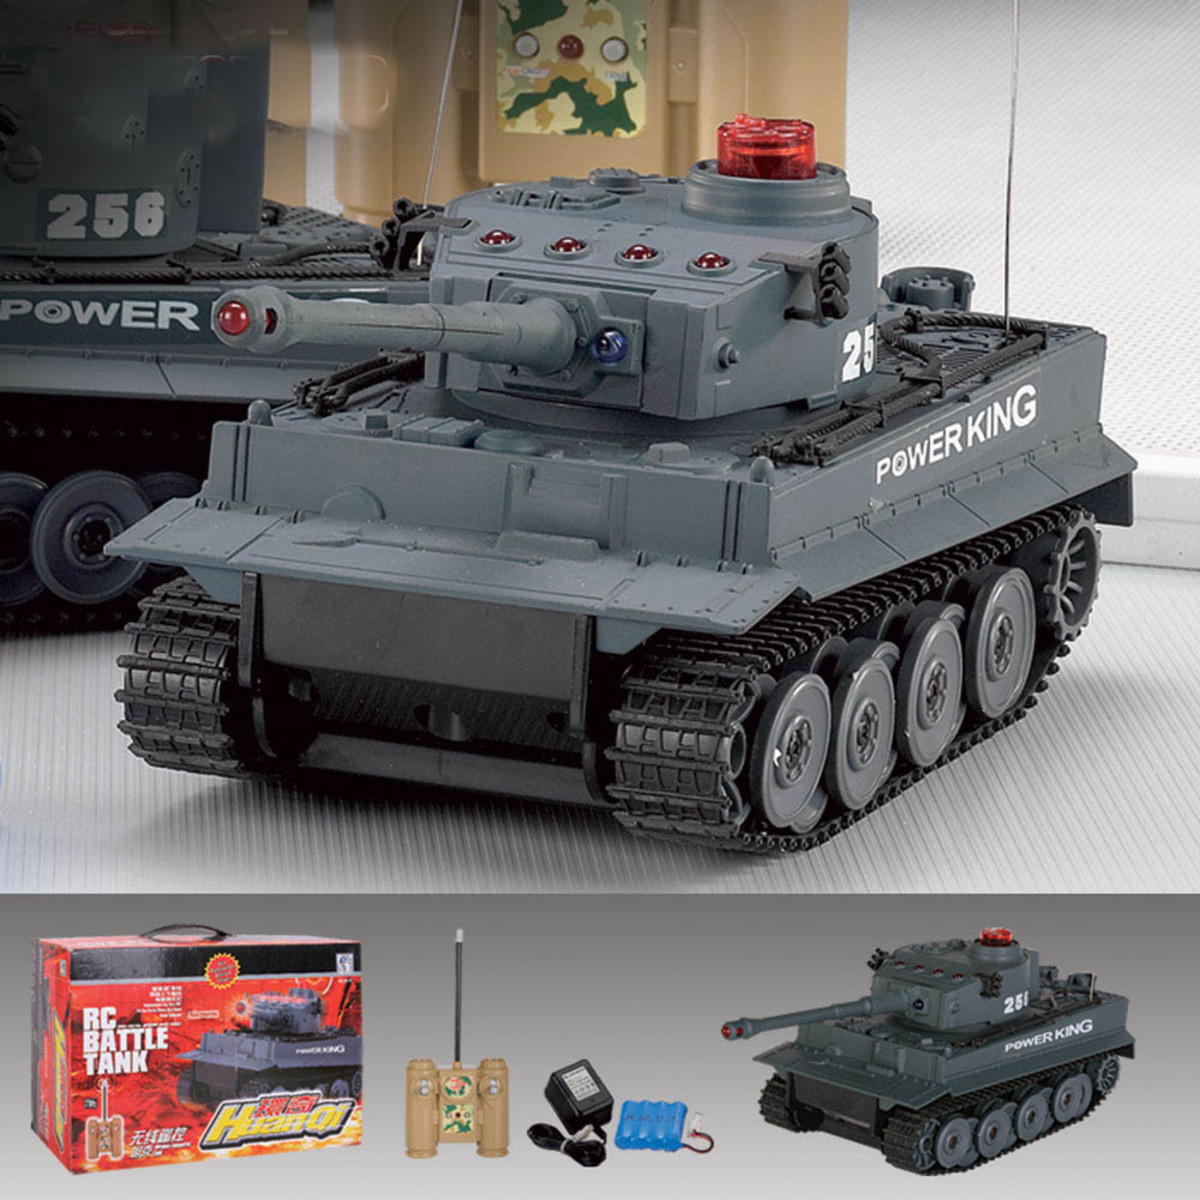 Radio controlled RC tanks